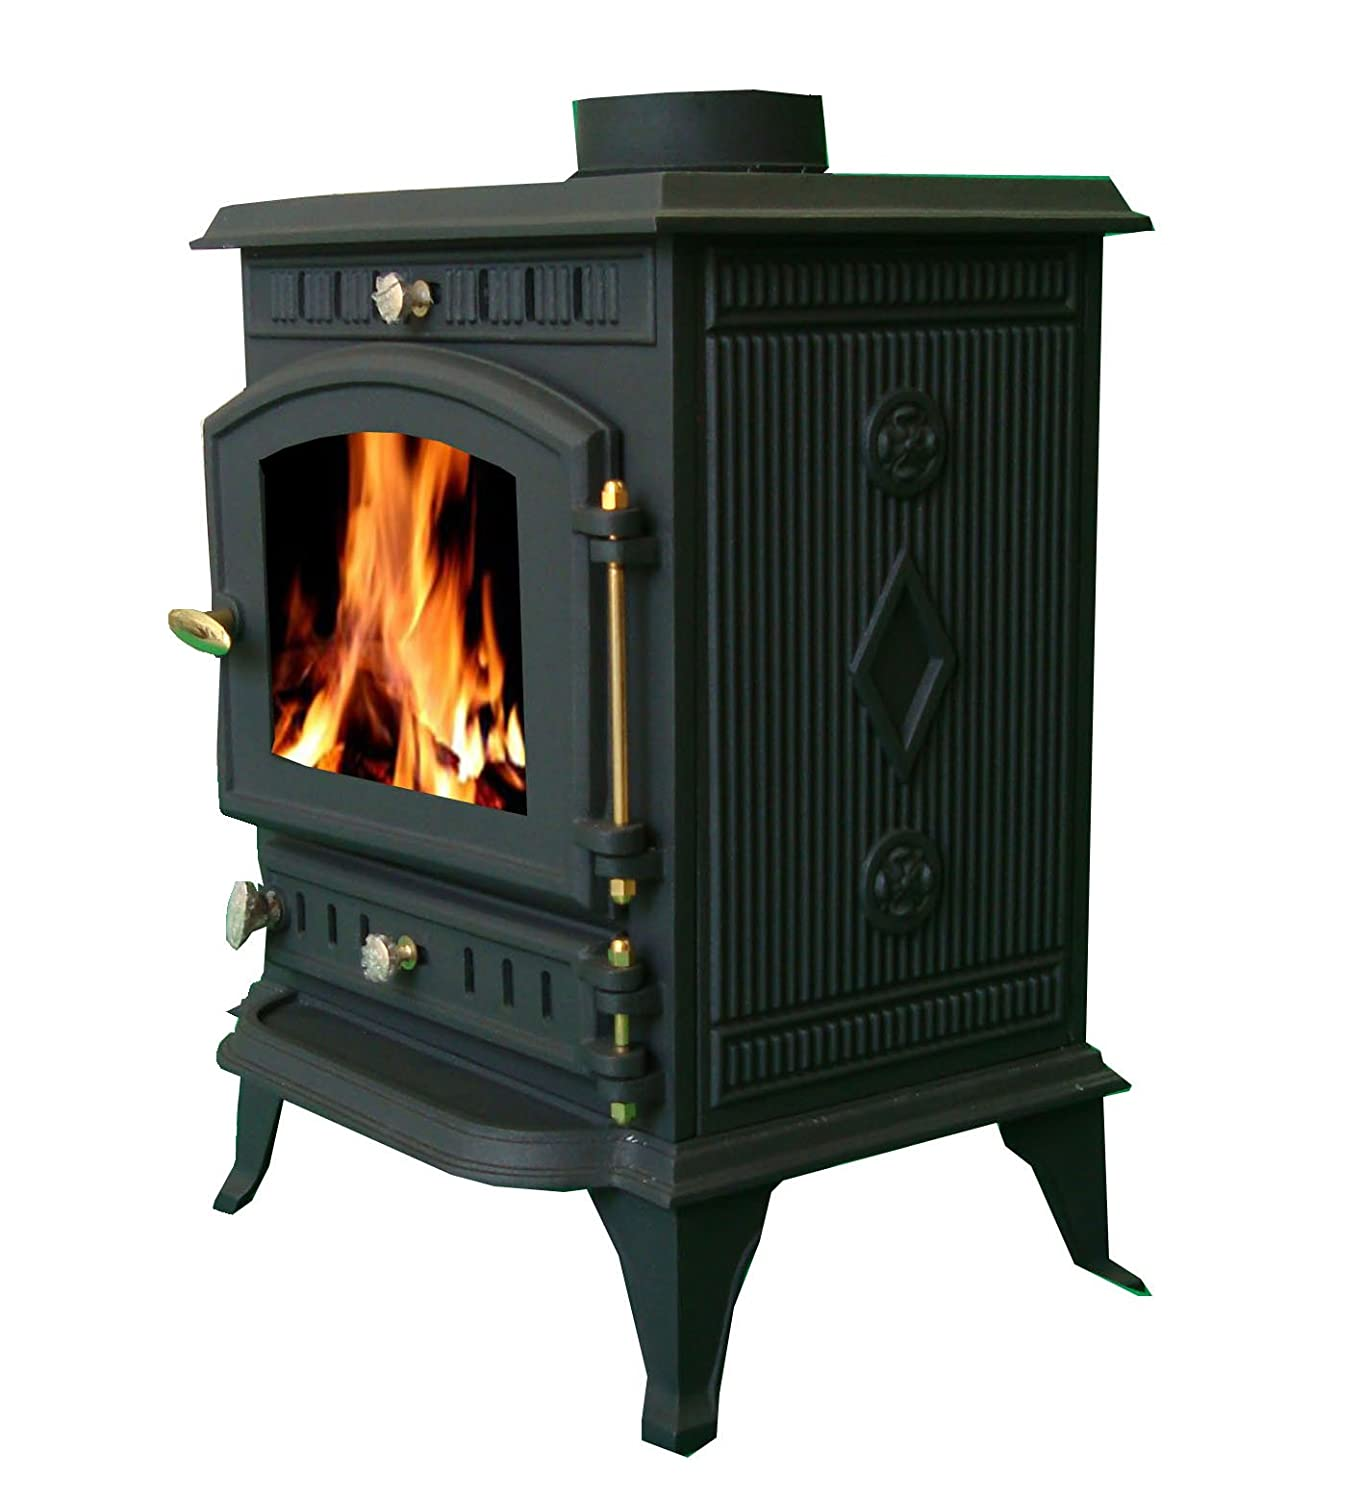 Amazon.com: FoxHunter Cast Iron Log Wood Burner Stove JA010 7KW Multi Fuel Fire Place: Home & Kitchen